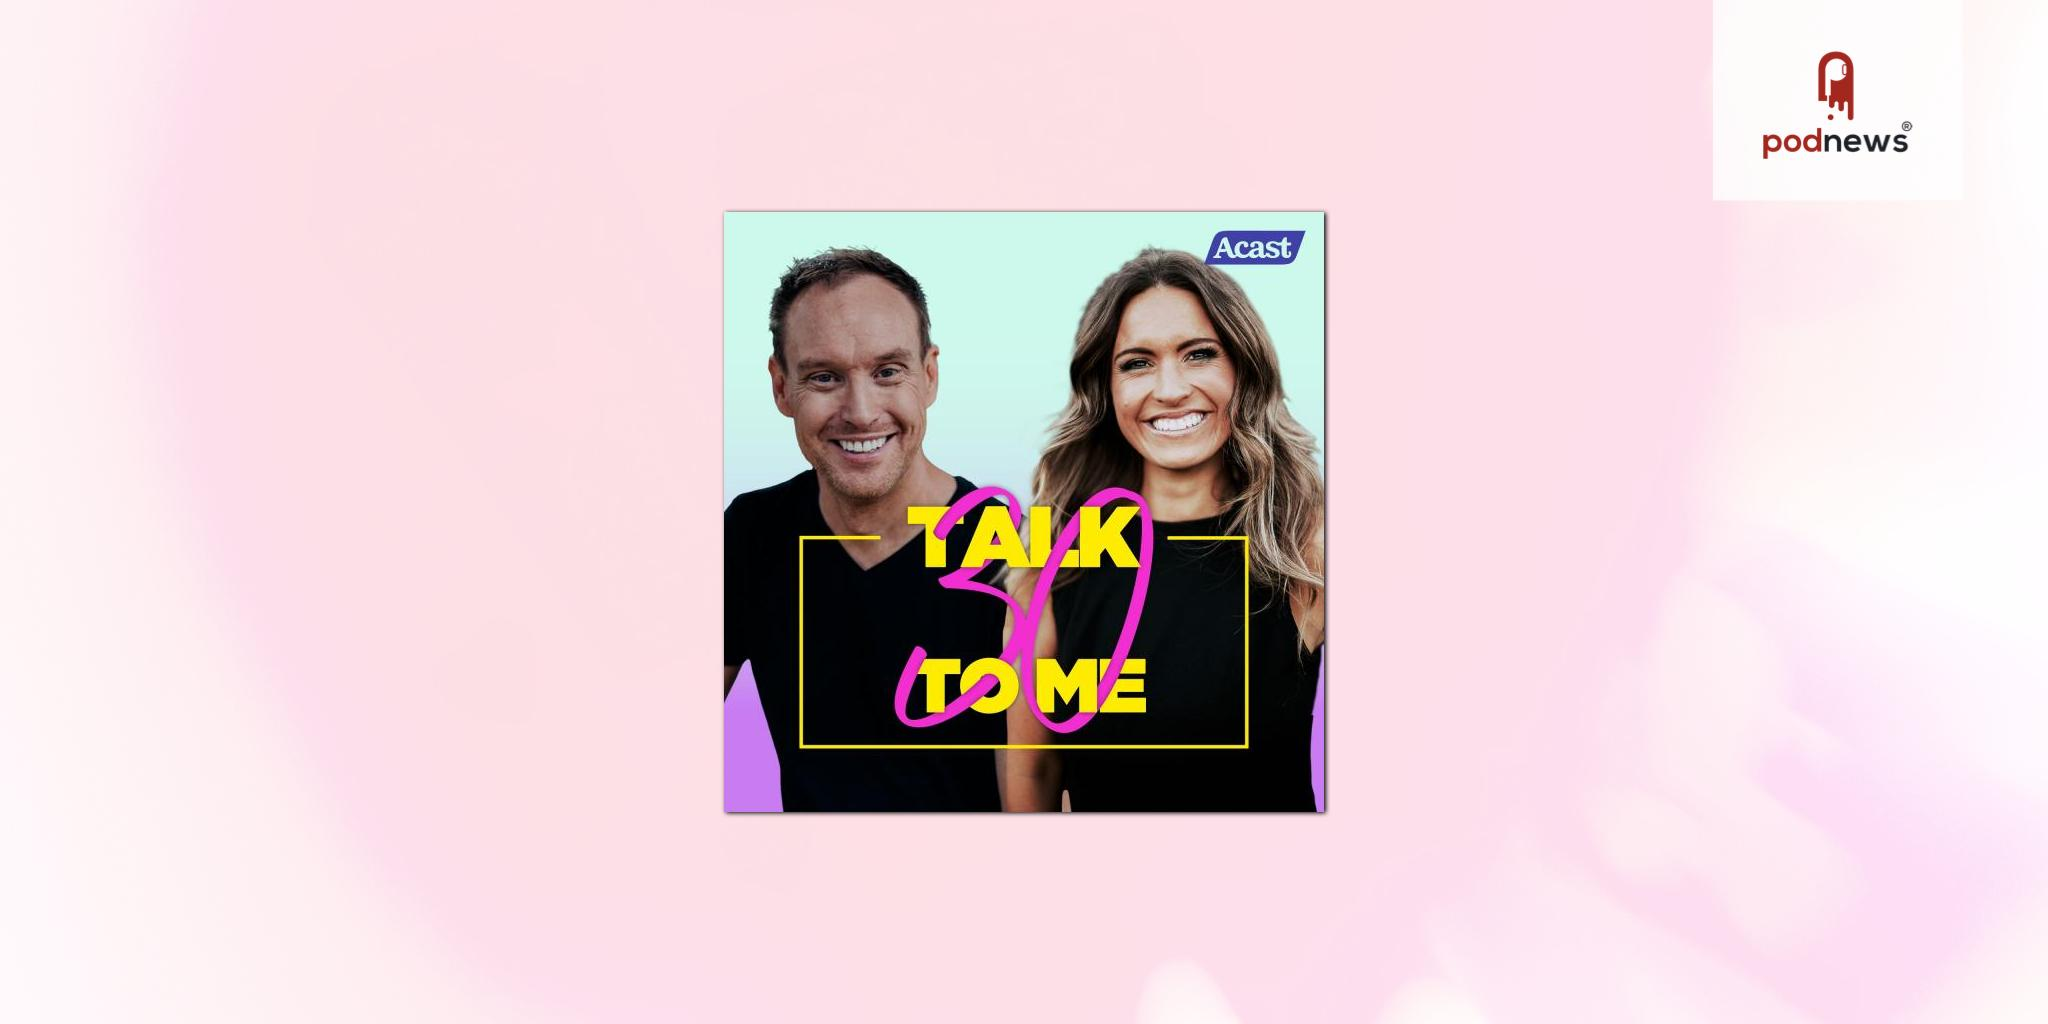 Christie Hayes and husband Justin Coombes-Pearce launch new podcast Talk Thirty To Me